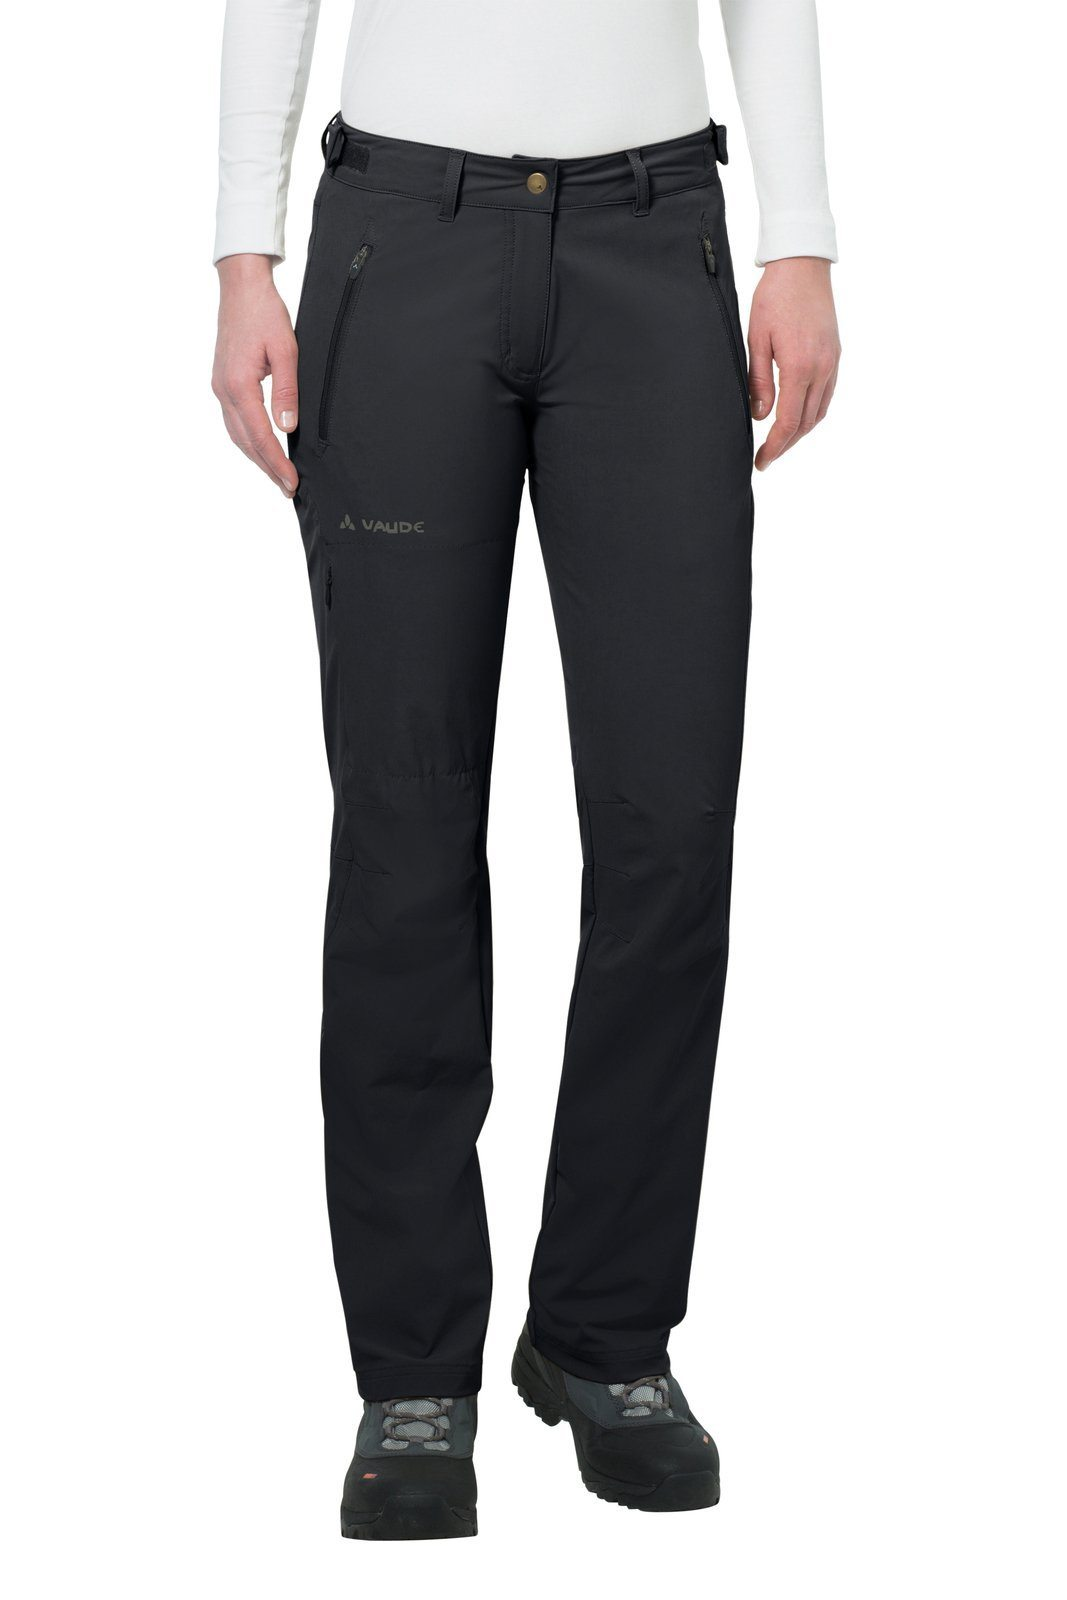 Vaude - W's Farley Stretch Pants II - made from environmentally-friendly bluesign® certified materials - Weekendbee - sustainable sportswear